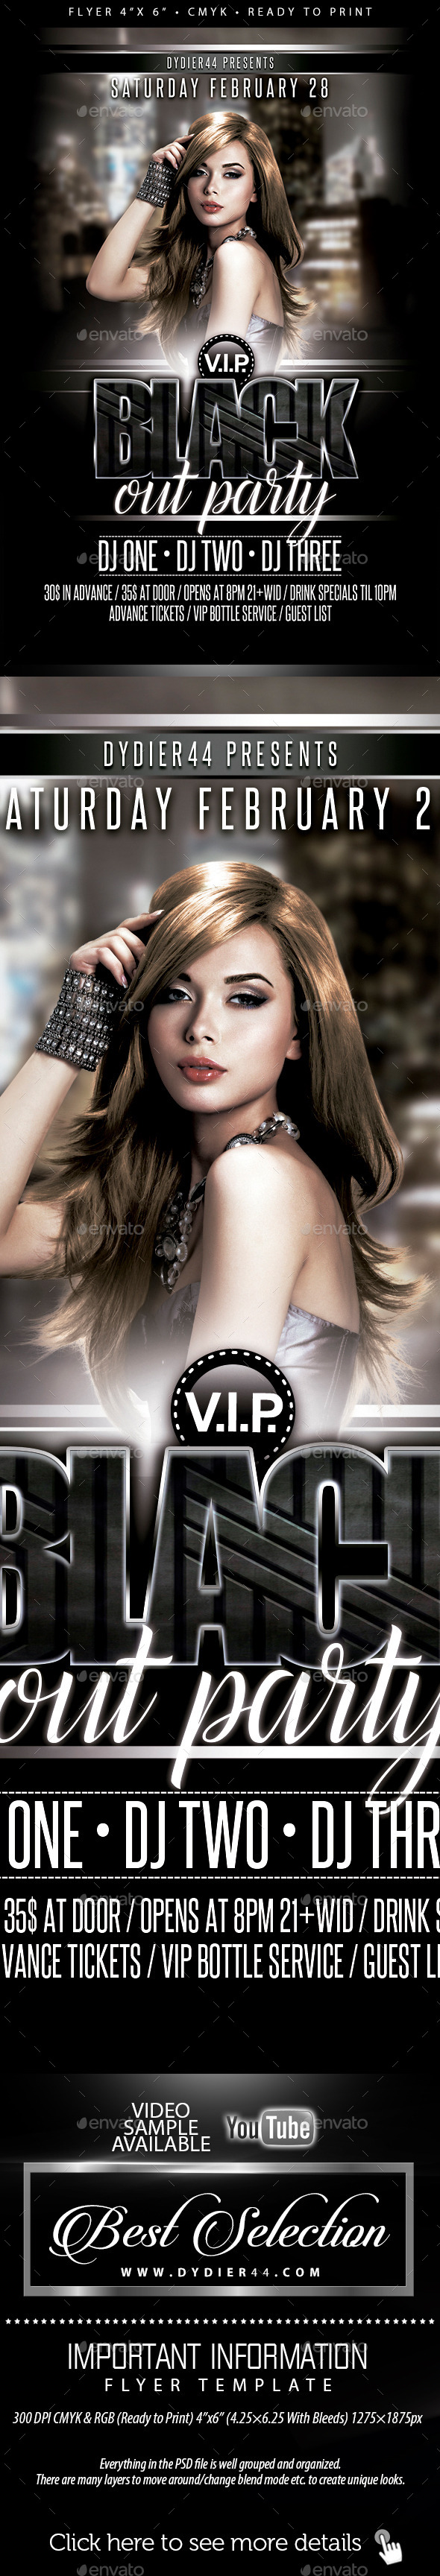 GraphicRiver VIP Blackout Party Flyer Template 4x6 11783381